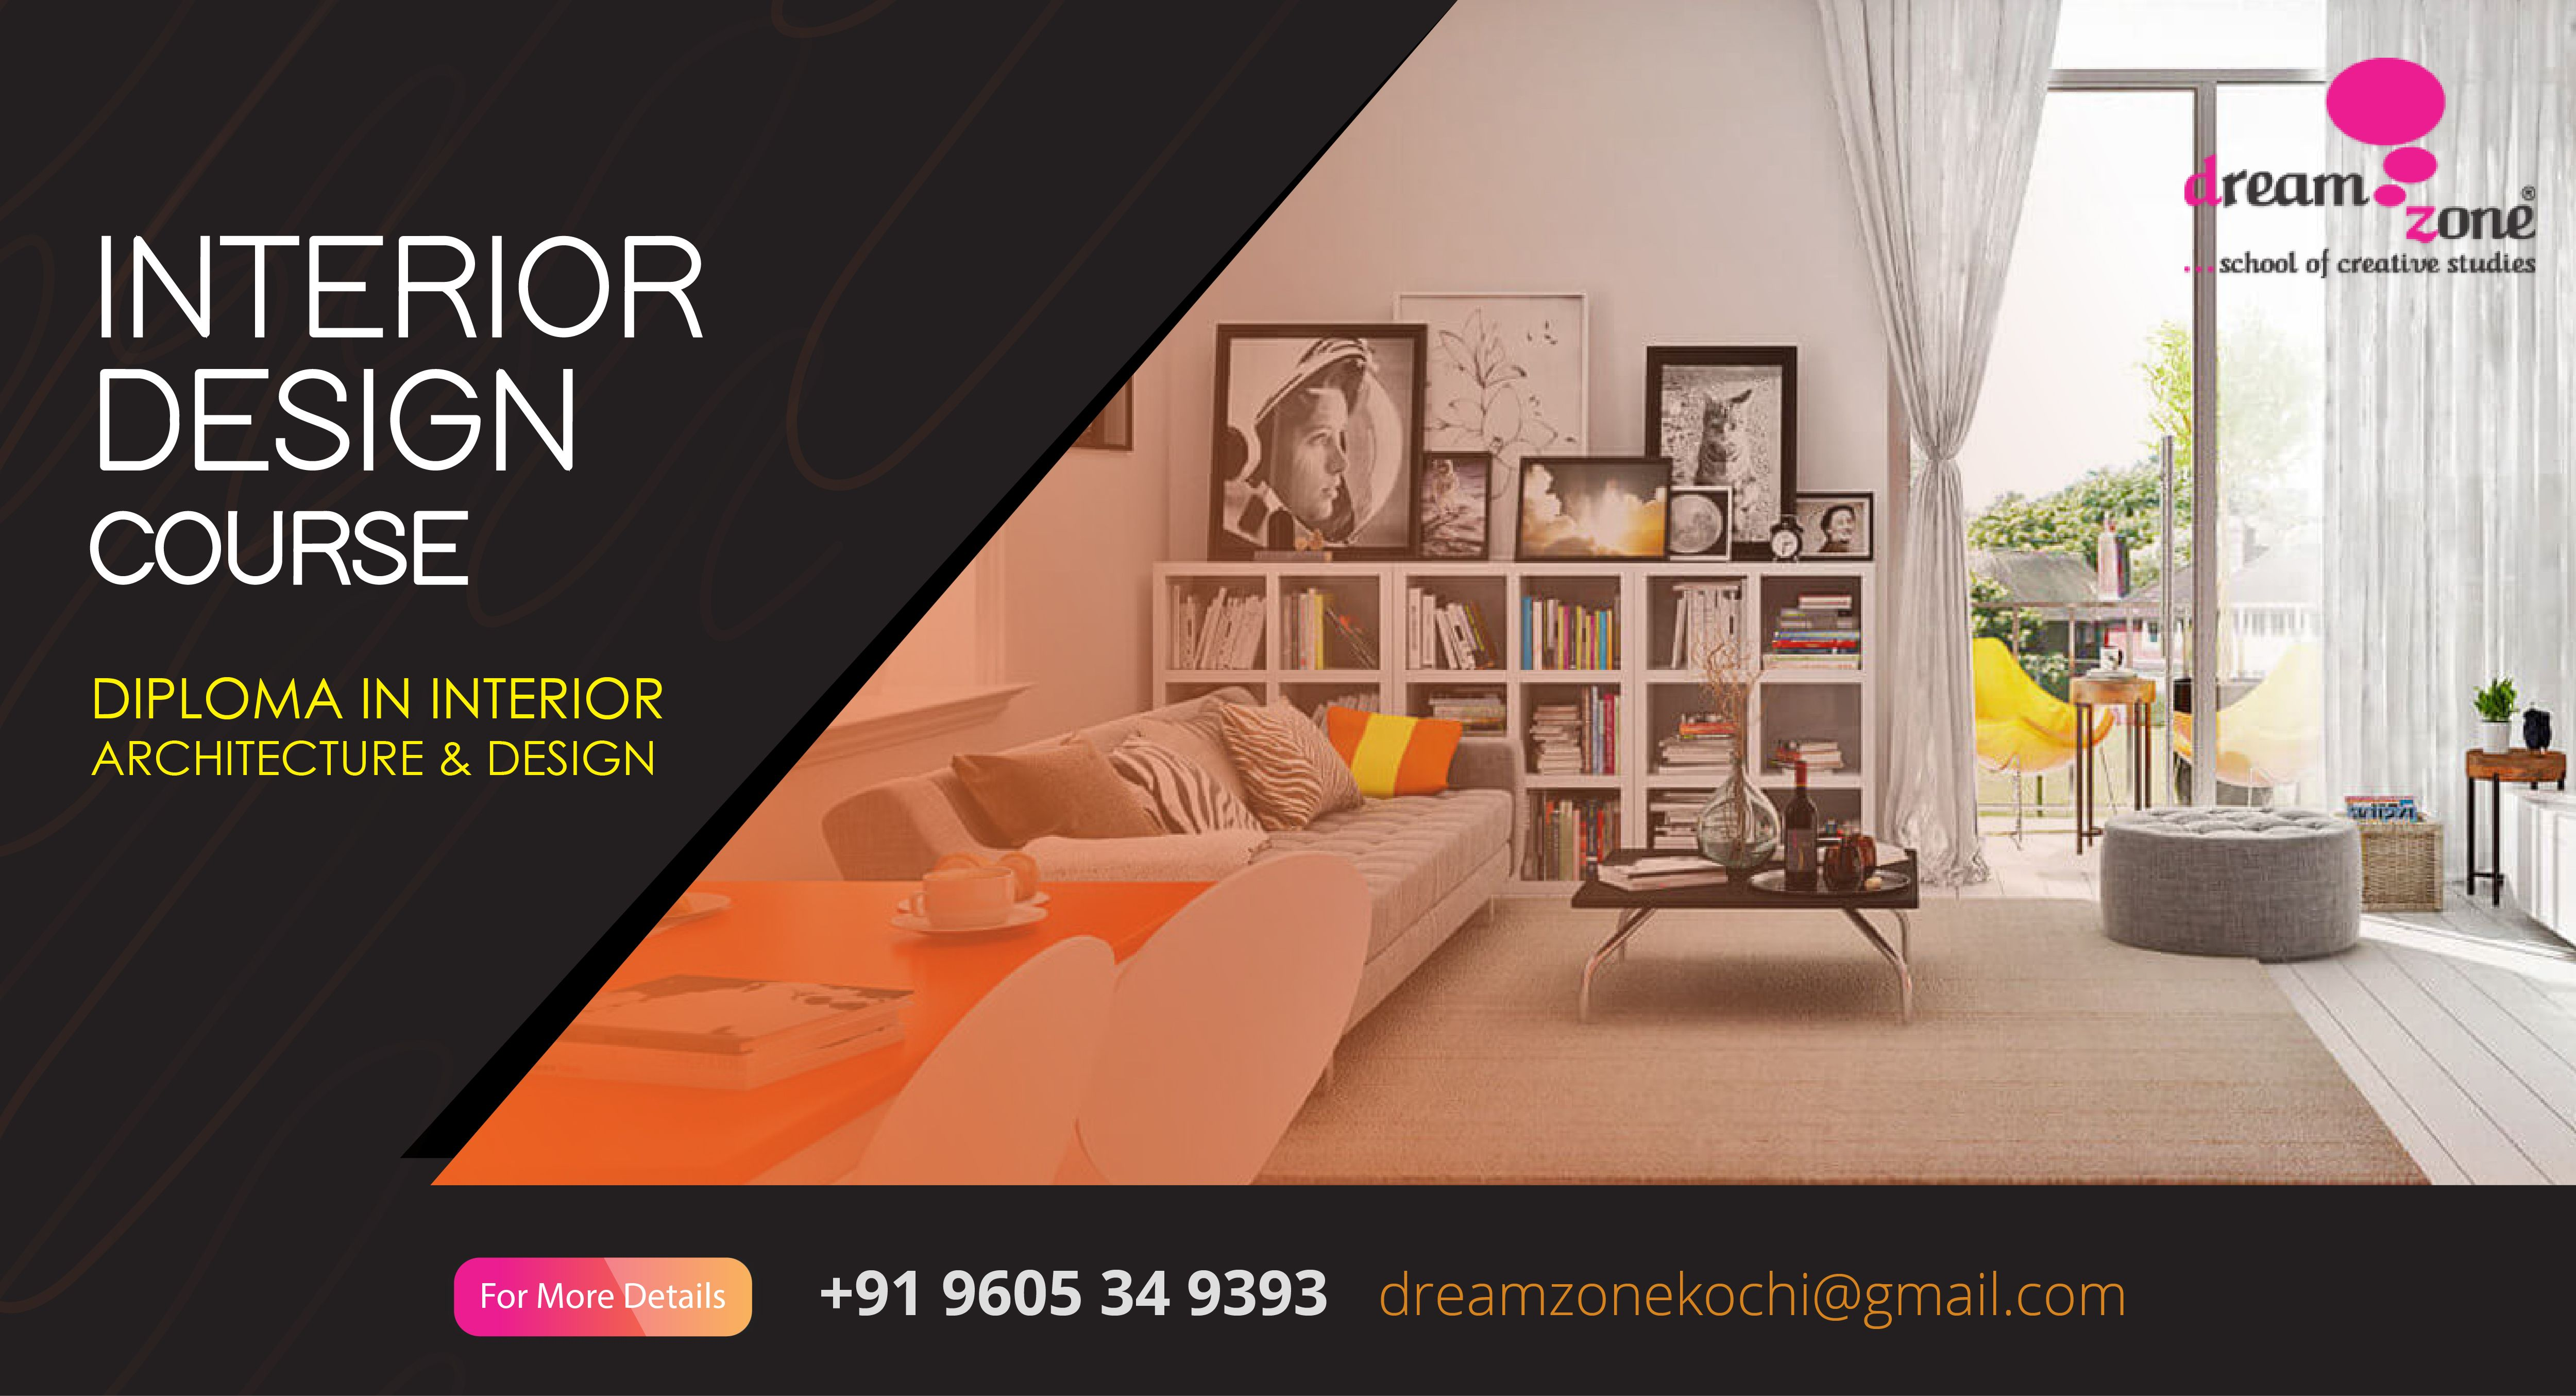 Interior Designers Make Interior Spaces Functional Safe And Beautiful For Almost Every Type Of Building Offices Hom Interior Interior Design Courses Design